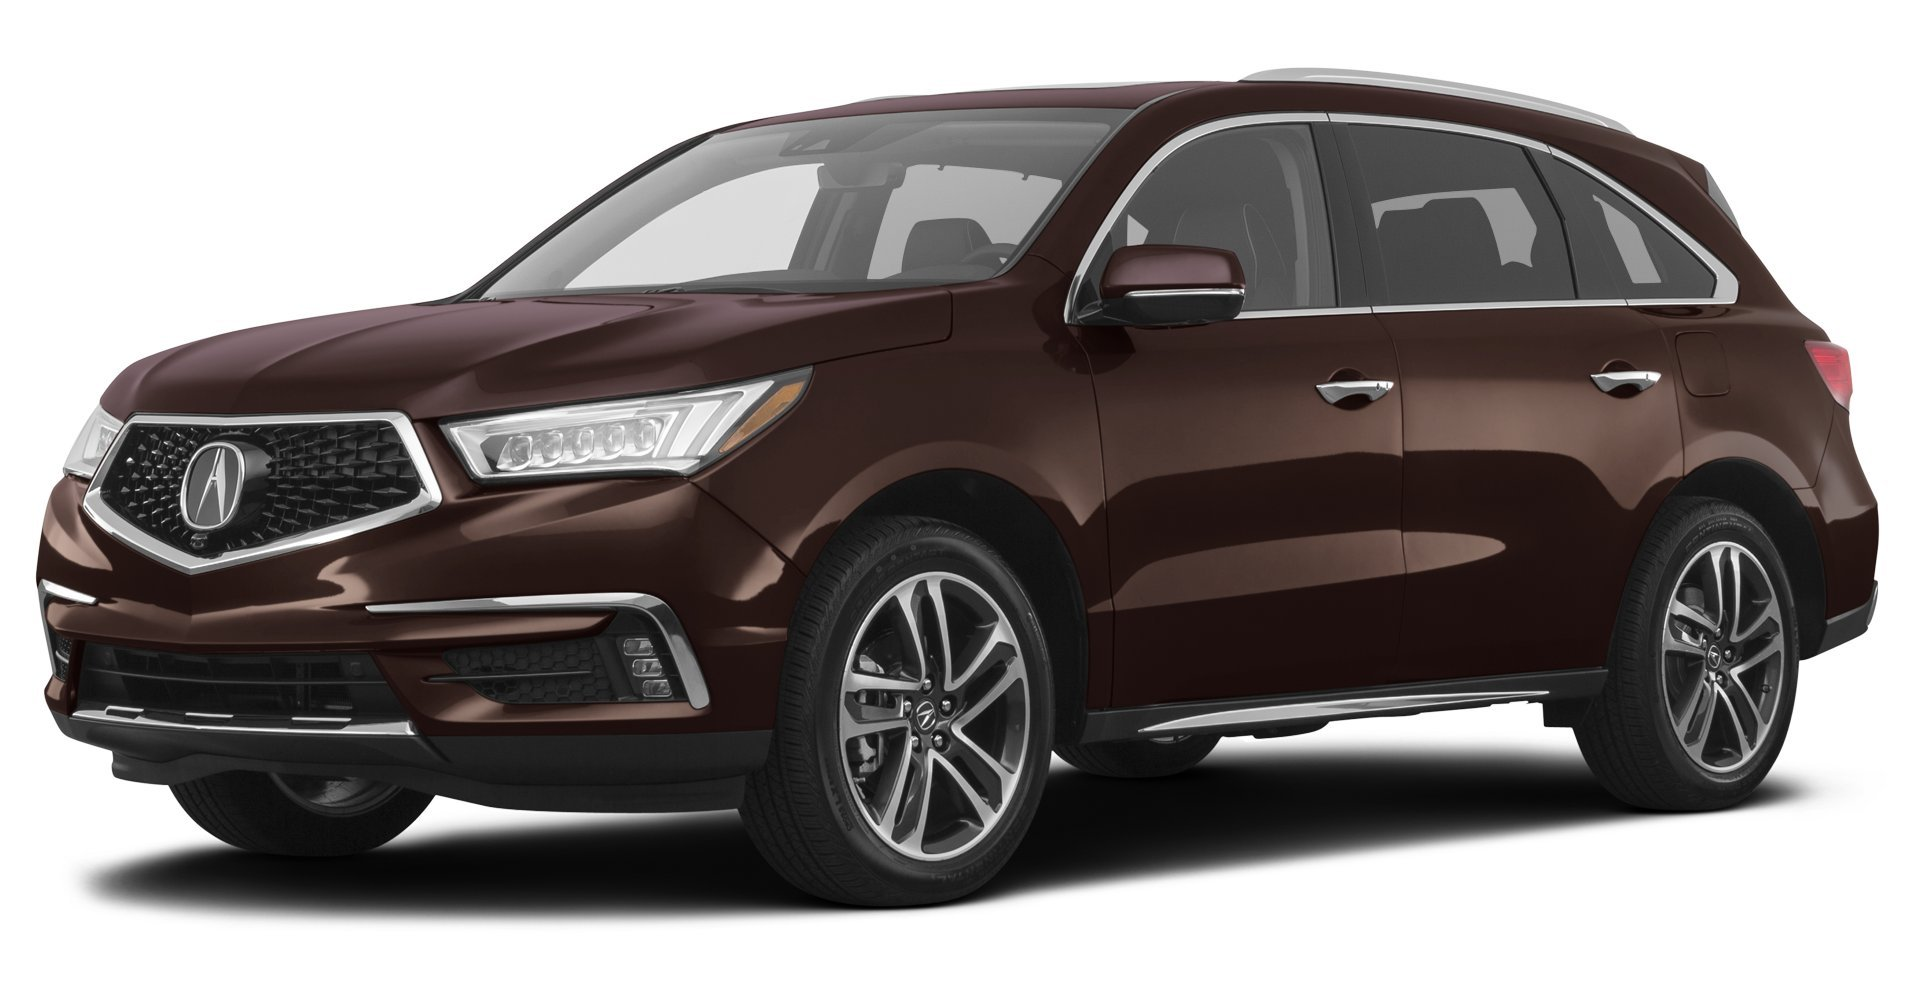 2017 infiniti qx80 reviews images and specs vehicles. Black Bedroom Furniture Sets. Home Design Ideas